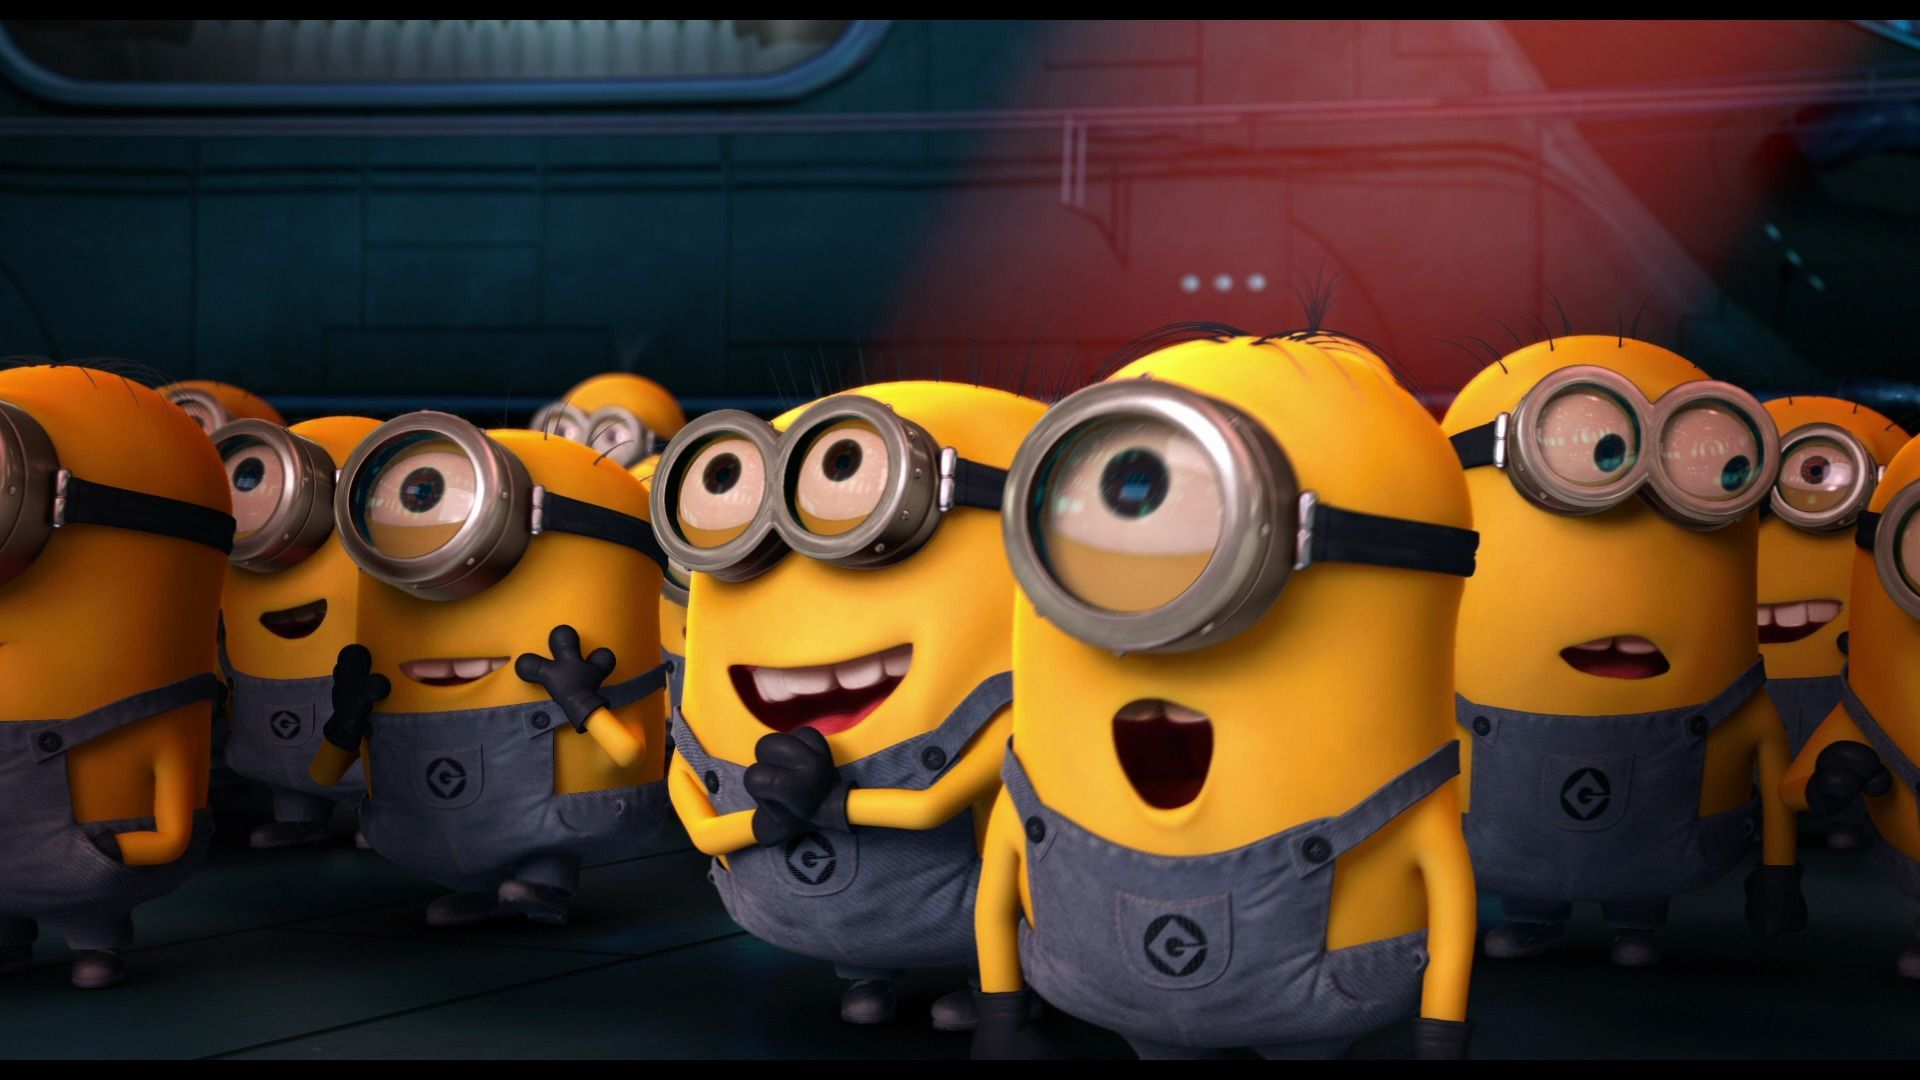 Despicable Me   Minions Wallpaper 7988 1920x1080